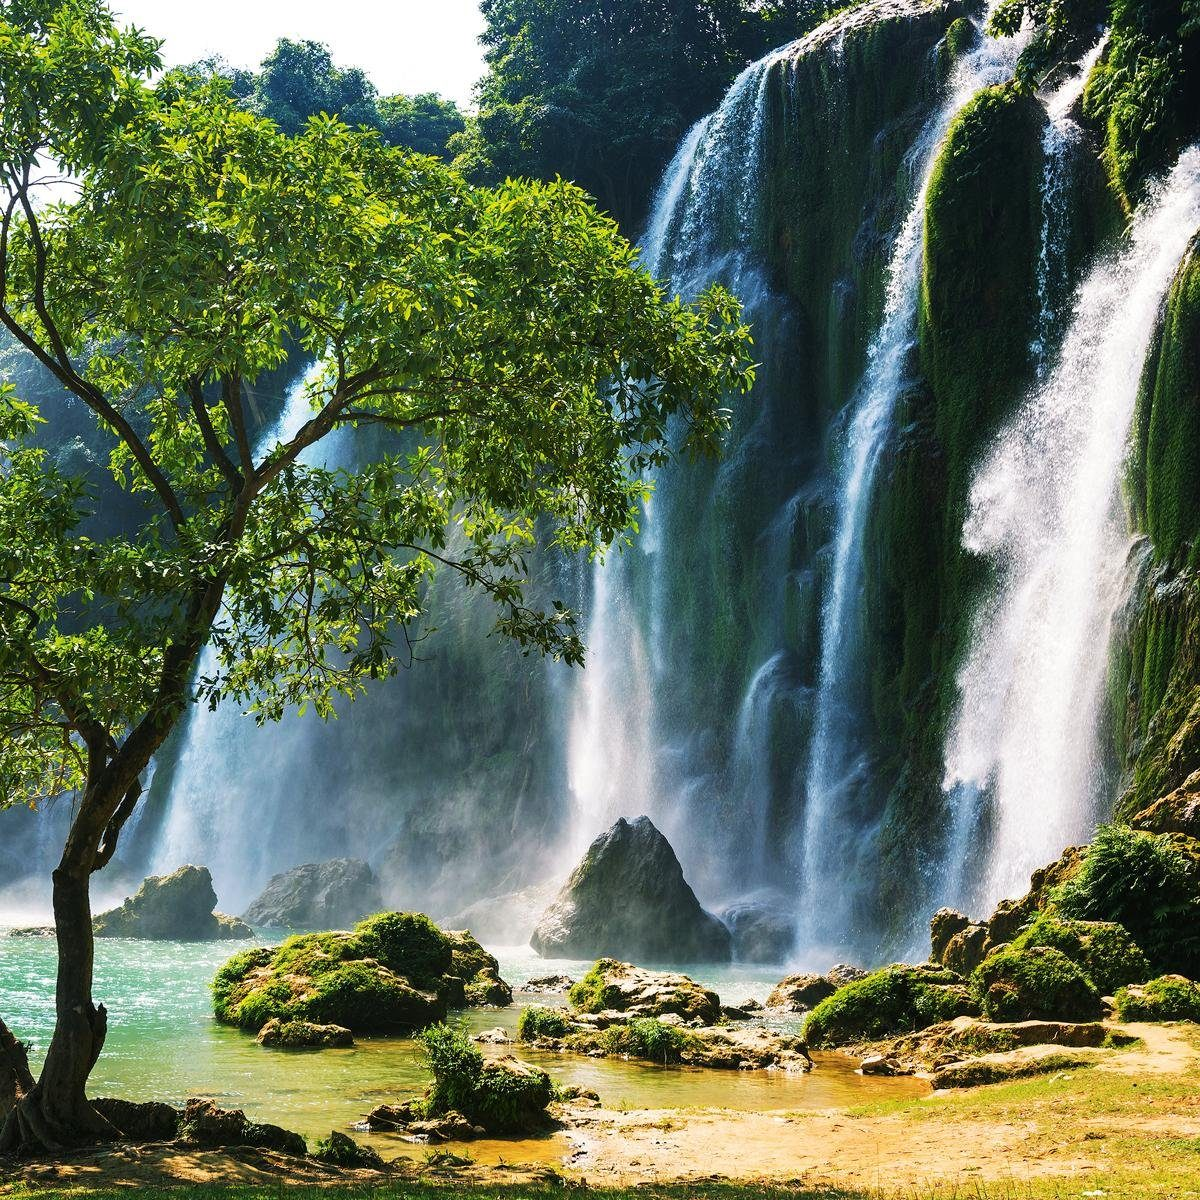 EUROGRAPHICS Glasbild »Waterfall In Vietnam«, 50/50cm